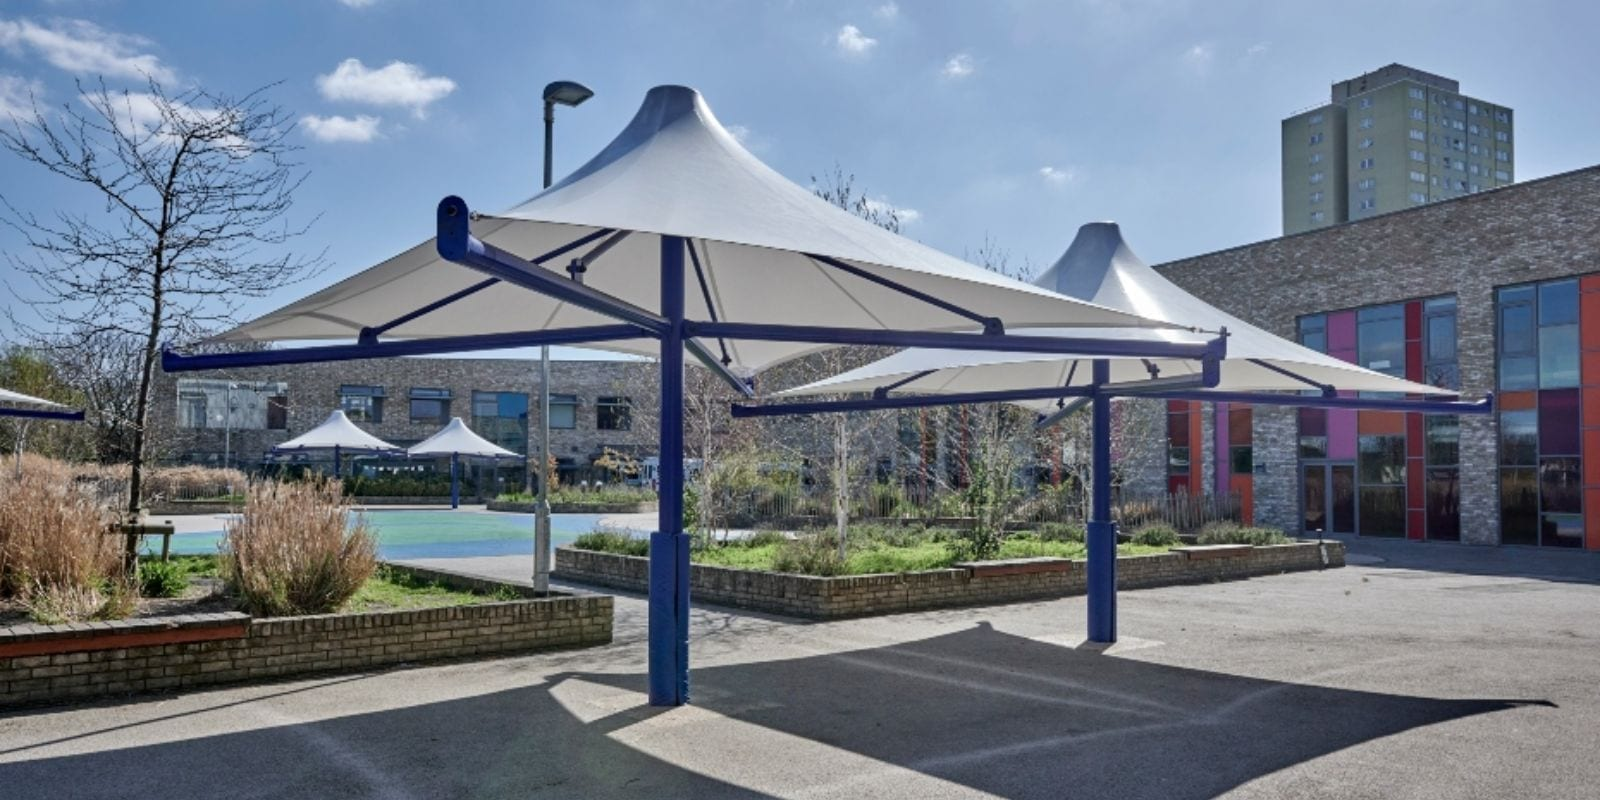 Fabric Canopies Shade Sails For Playgrounds Schools A S Landscape